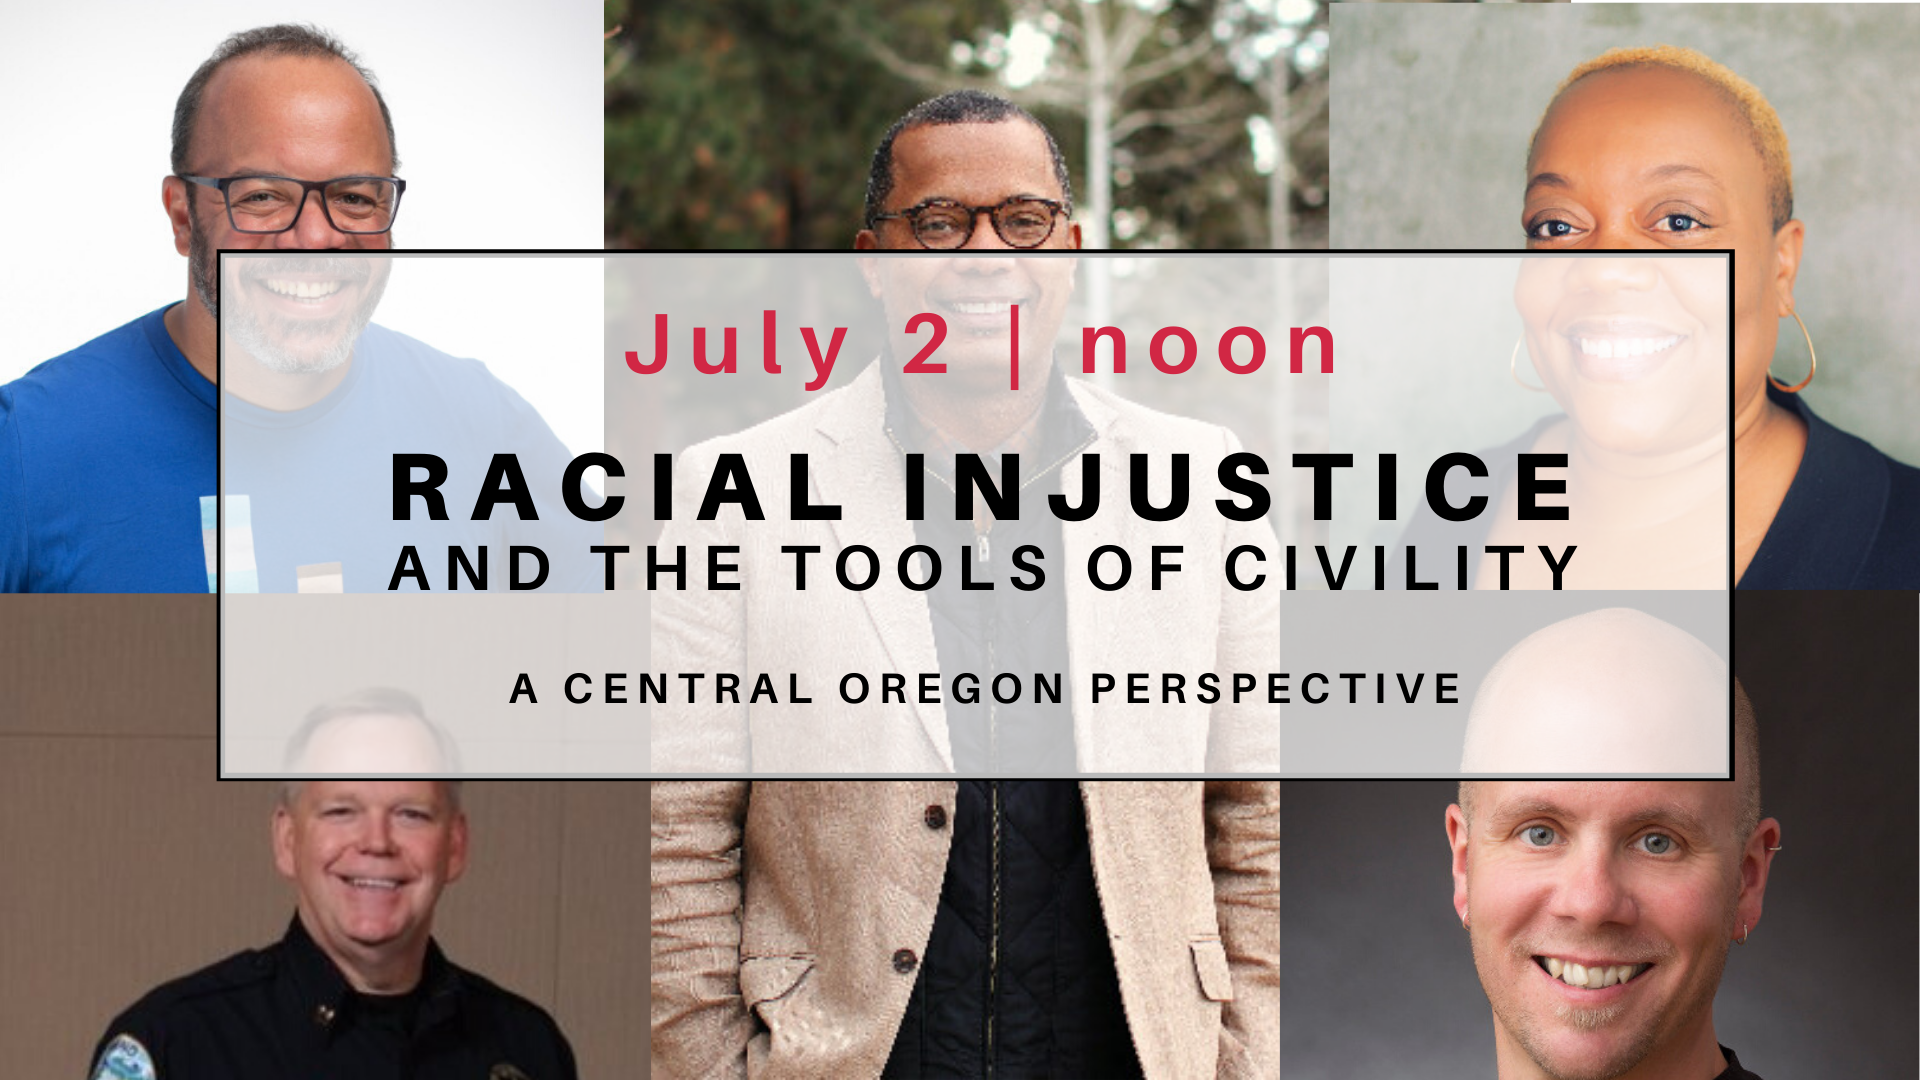 Reflections   July 2 Racial Injustice and the Tools of Civility